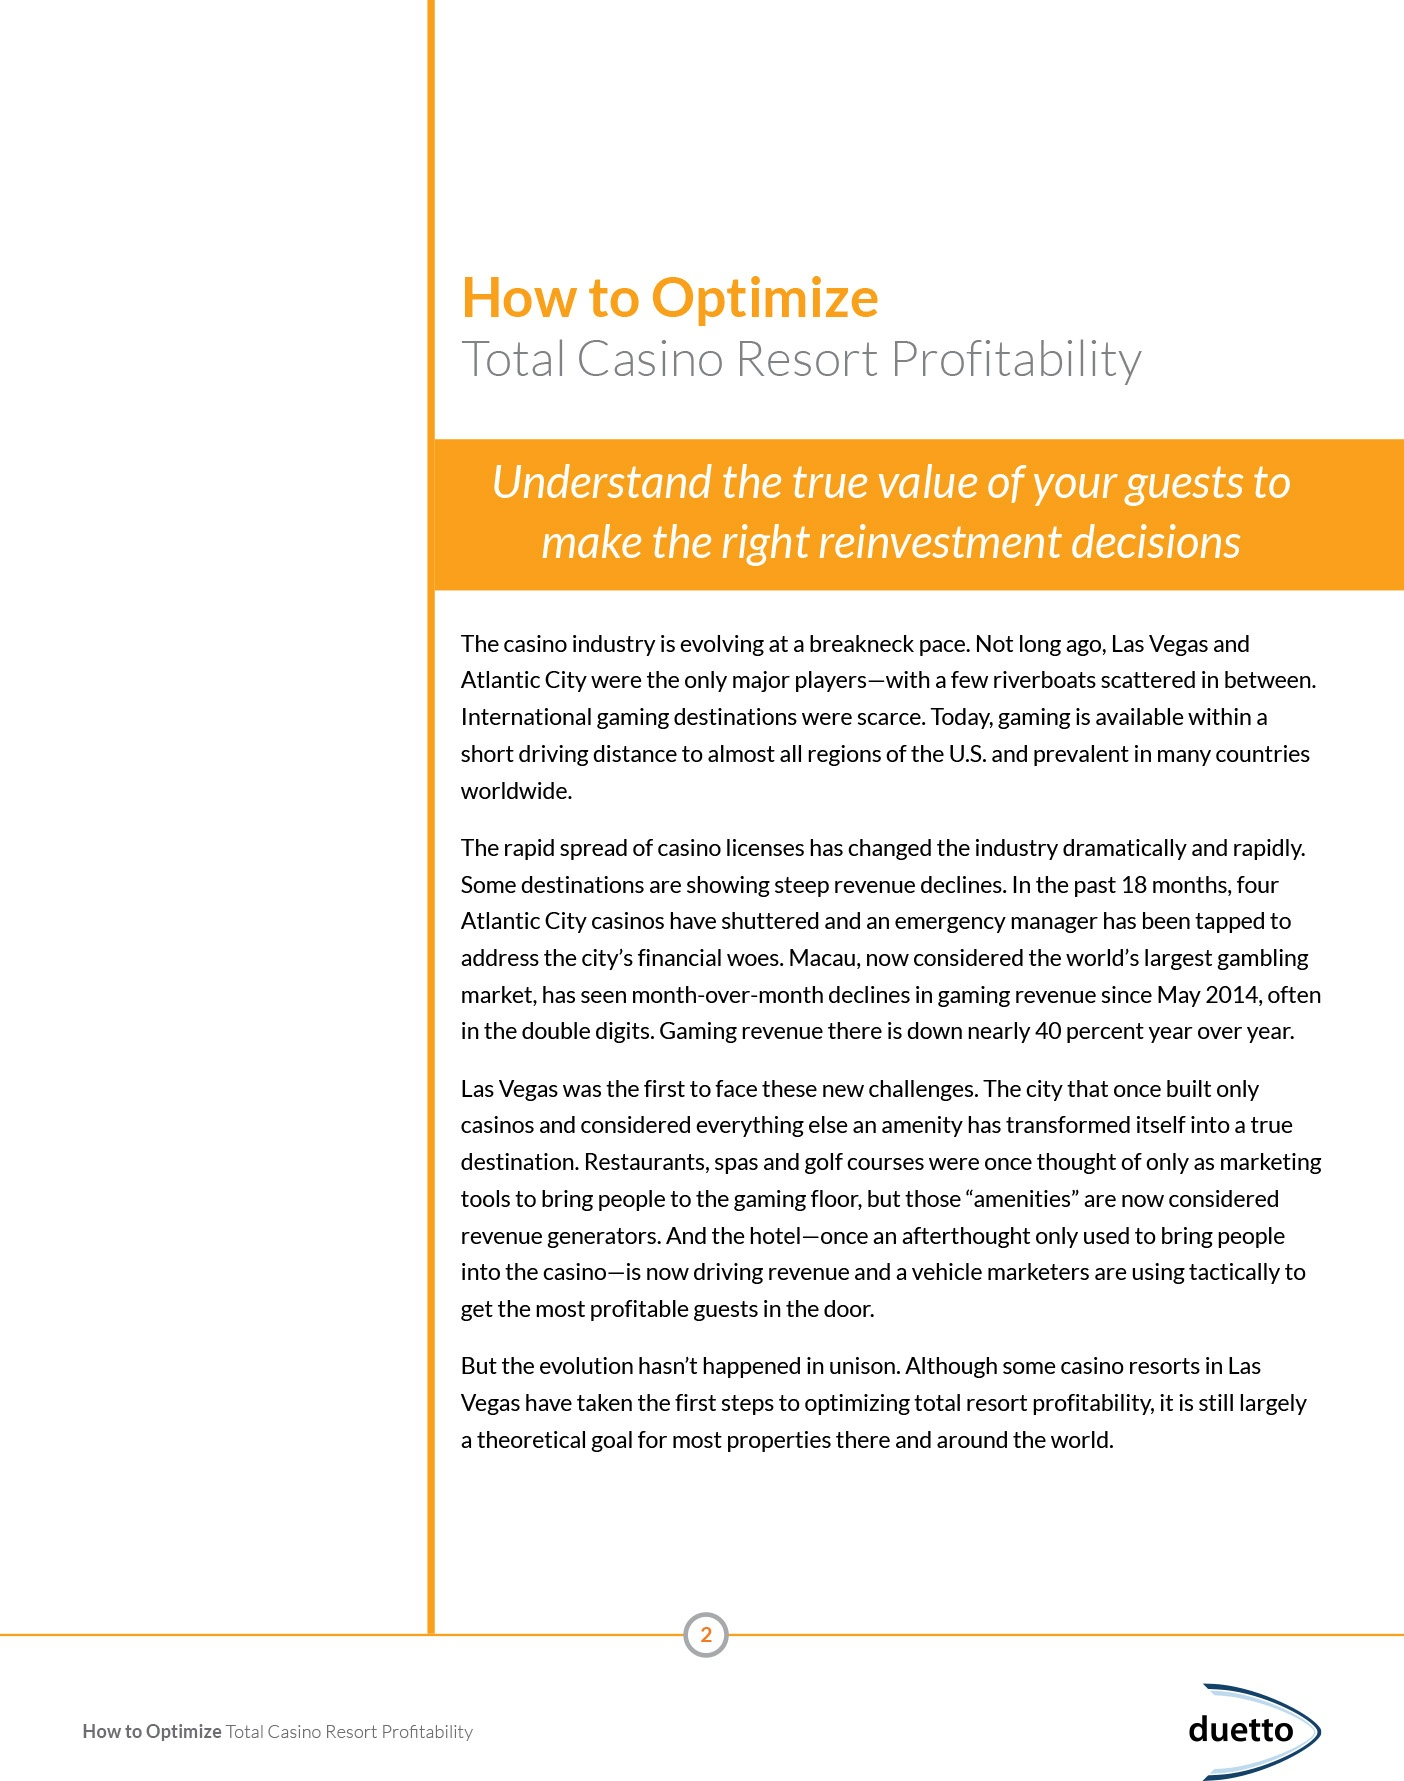 2How-to-Optimize-Casino-Profitability-2.jpg